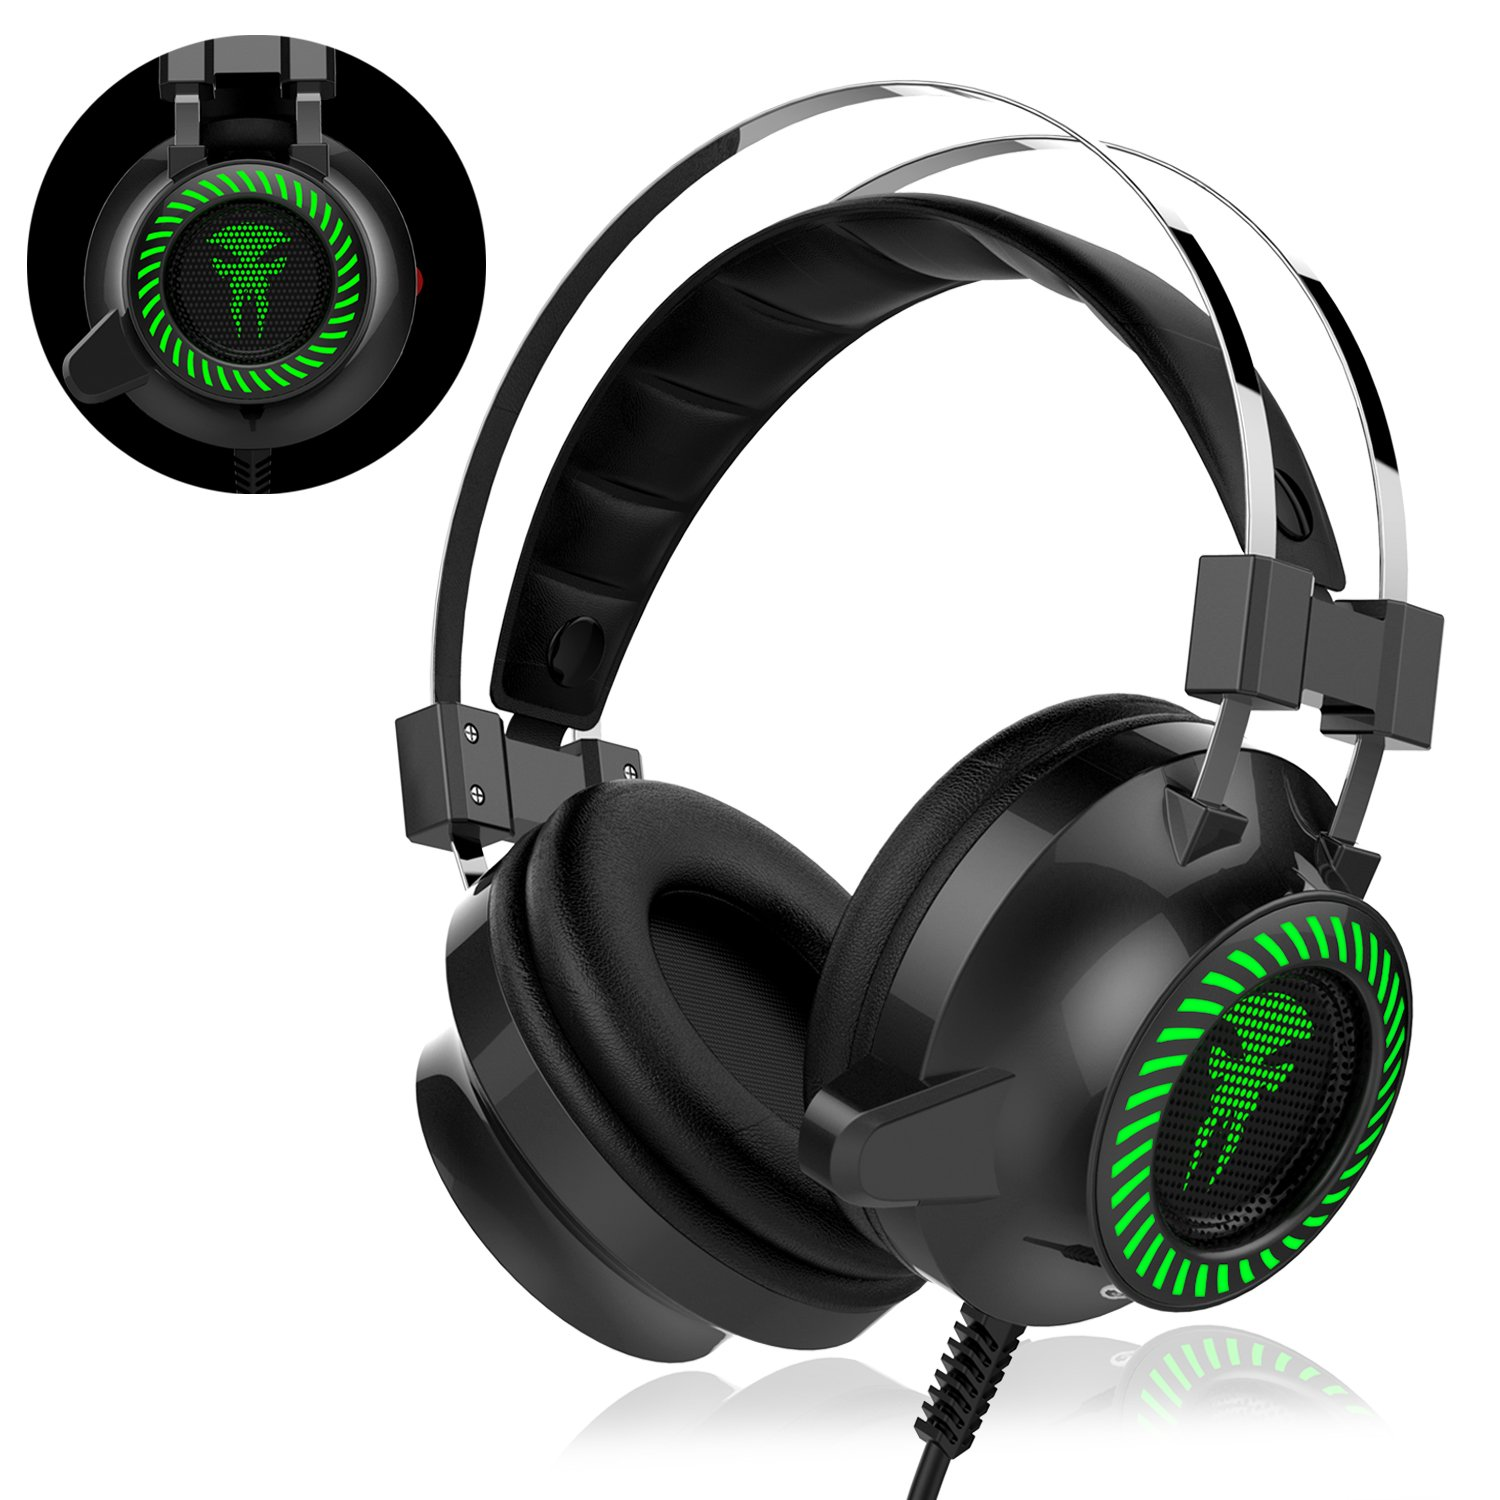 8620be49779 Gaming Headset, Nicksea Over-Ear Gaming Headphones with Microphone, Bass  Stereo Surround Sound Volume Control, ...